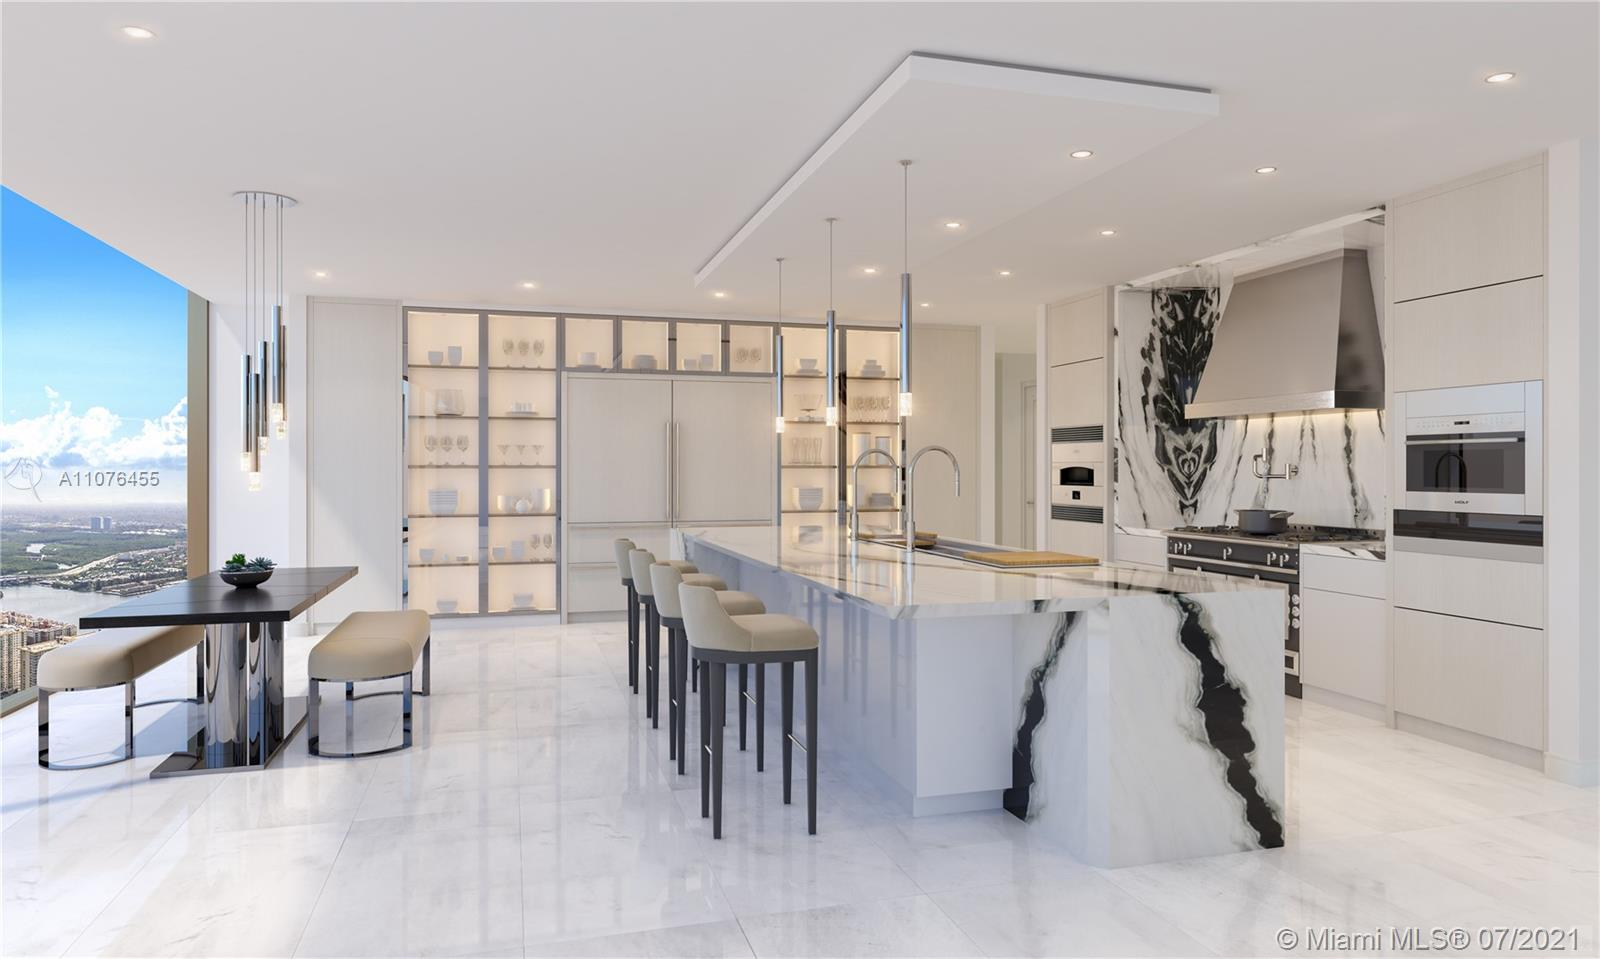 17901 Collins Ave, Unit #4401 Luxury Real Estate